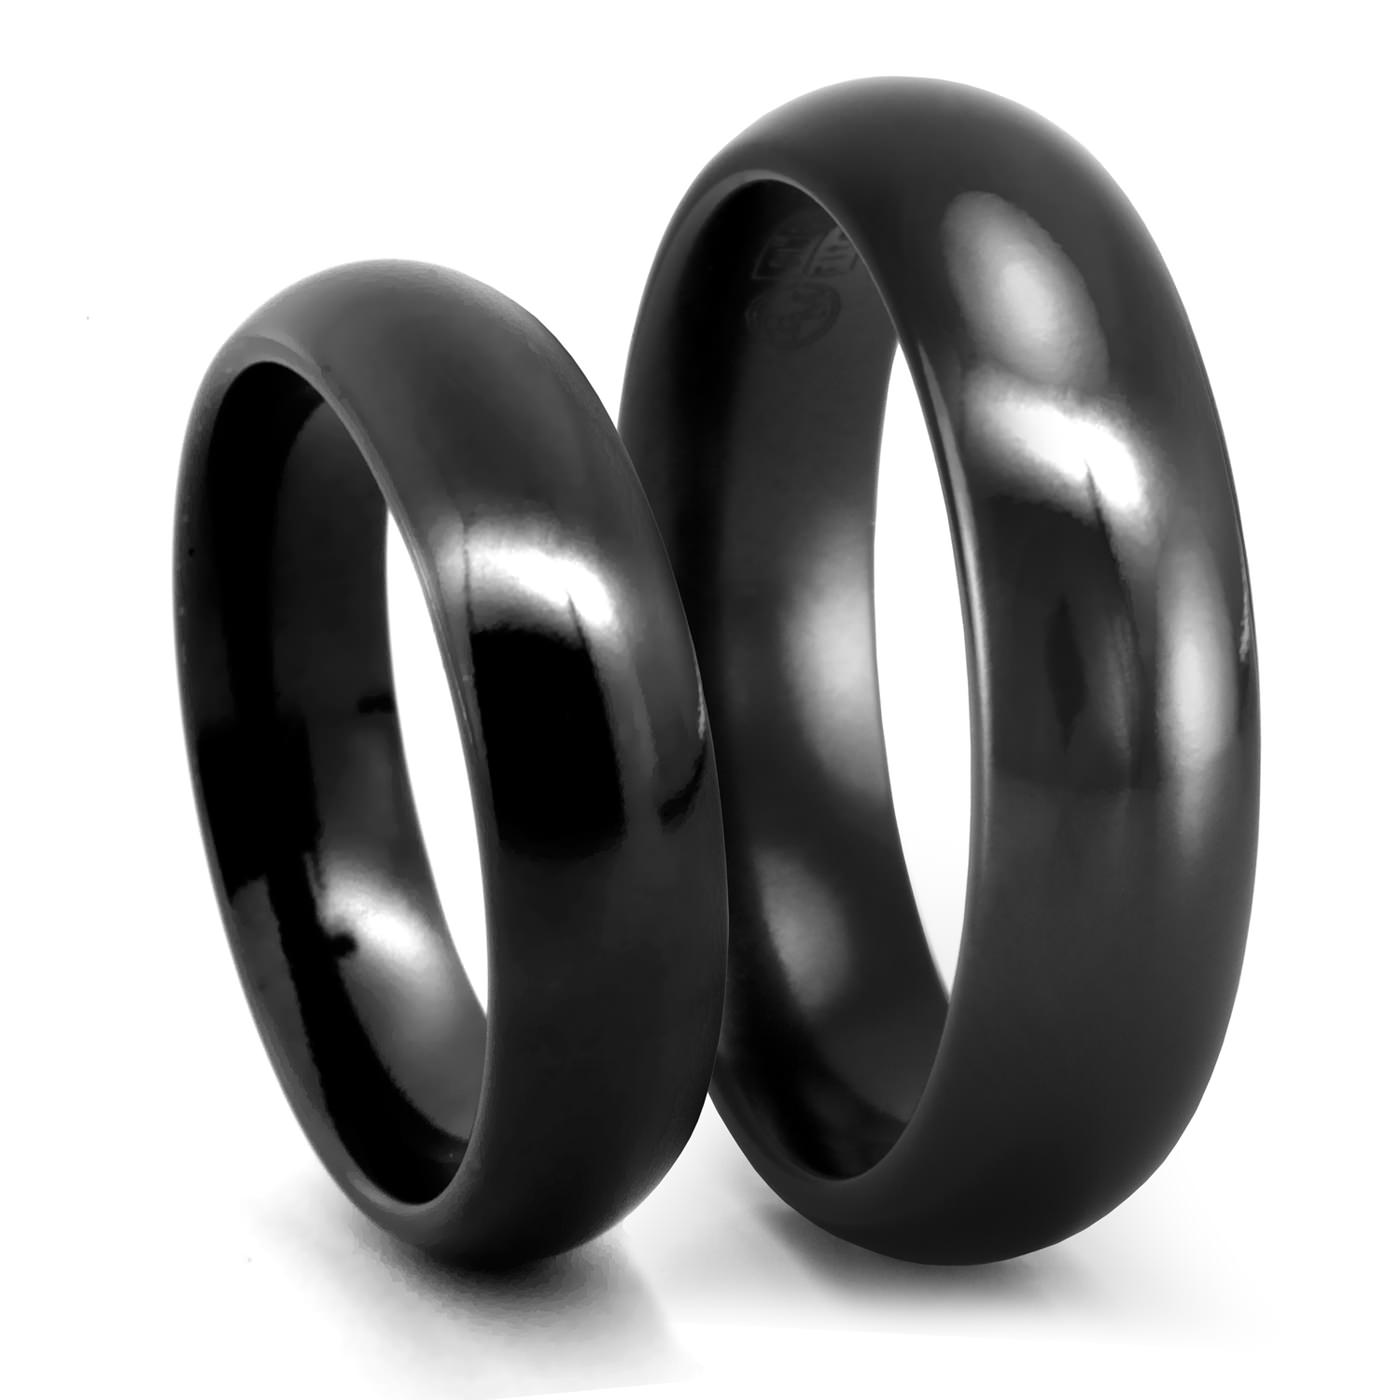 Clic Comfort Fit Black Anium Wedding Band Set 6mm Edward Mirell